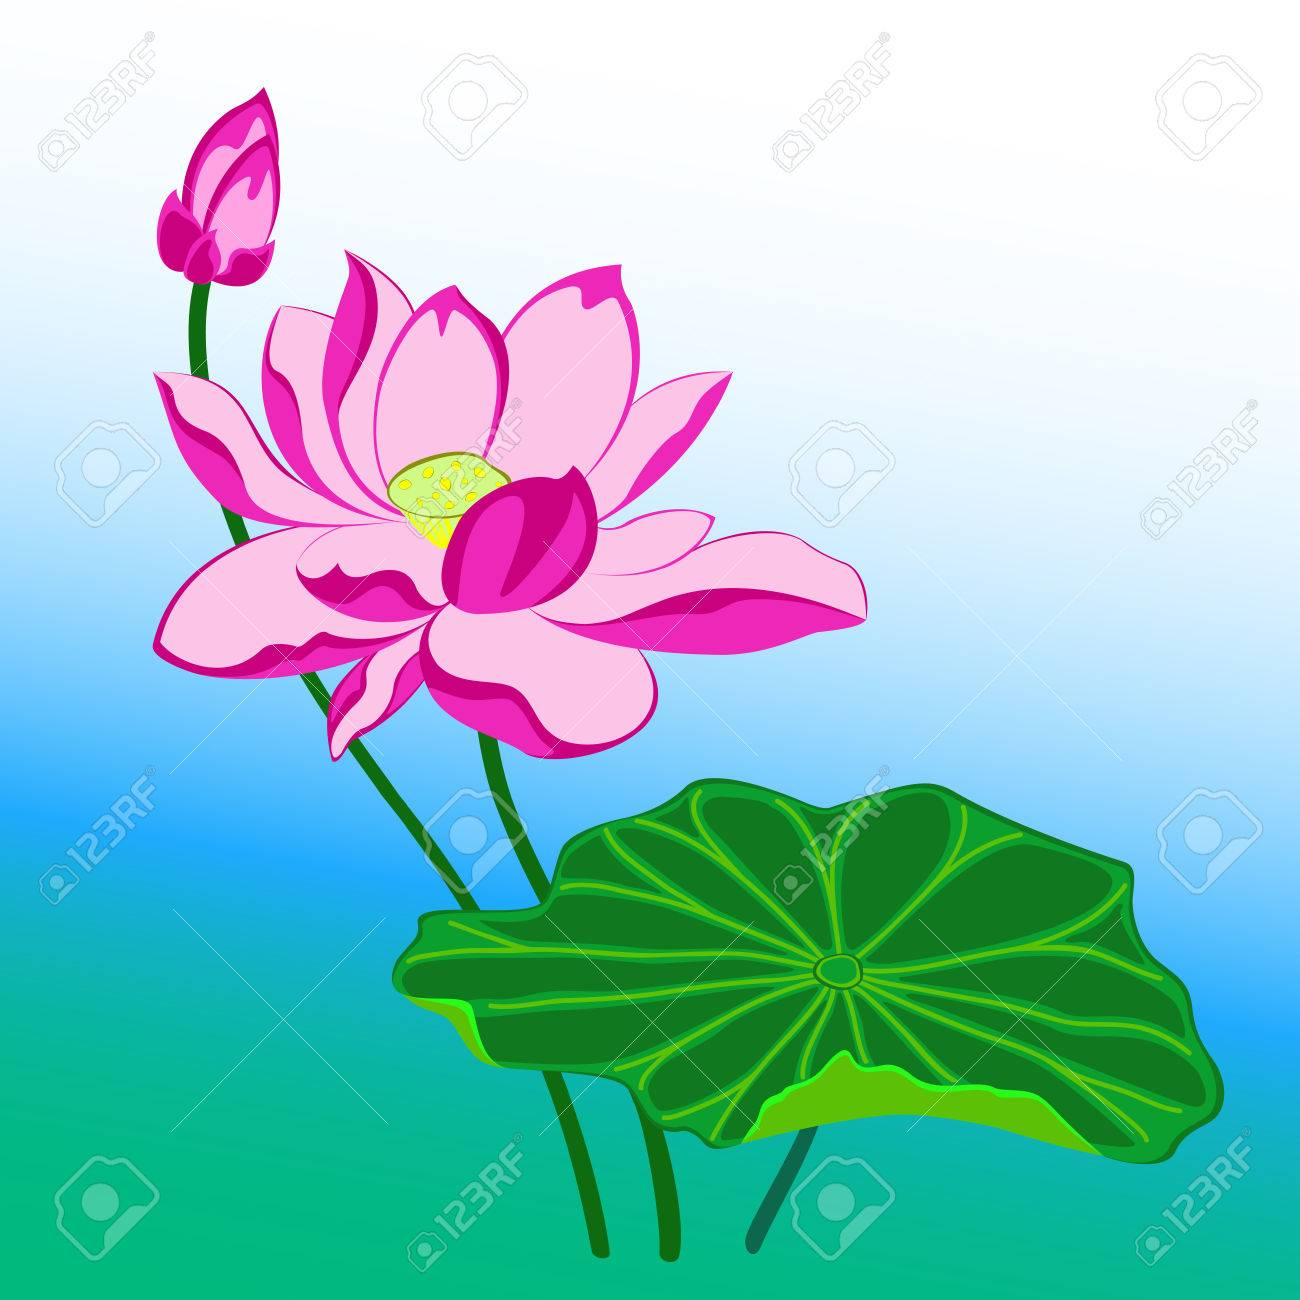 Pink Lotus Flower With Leaf And Bud Royalty Free Cliparts Vectors